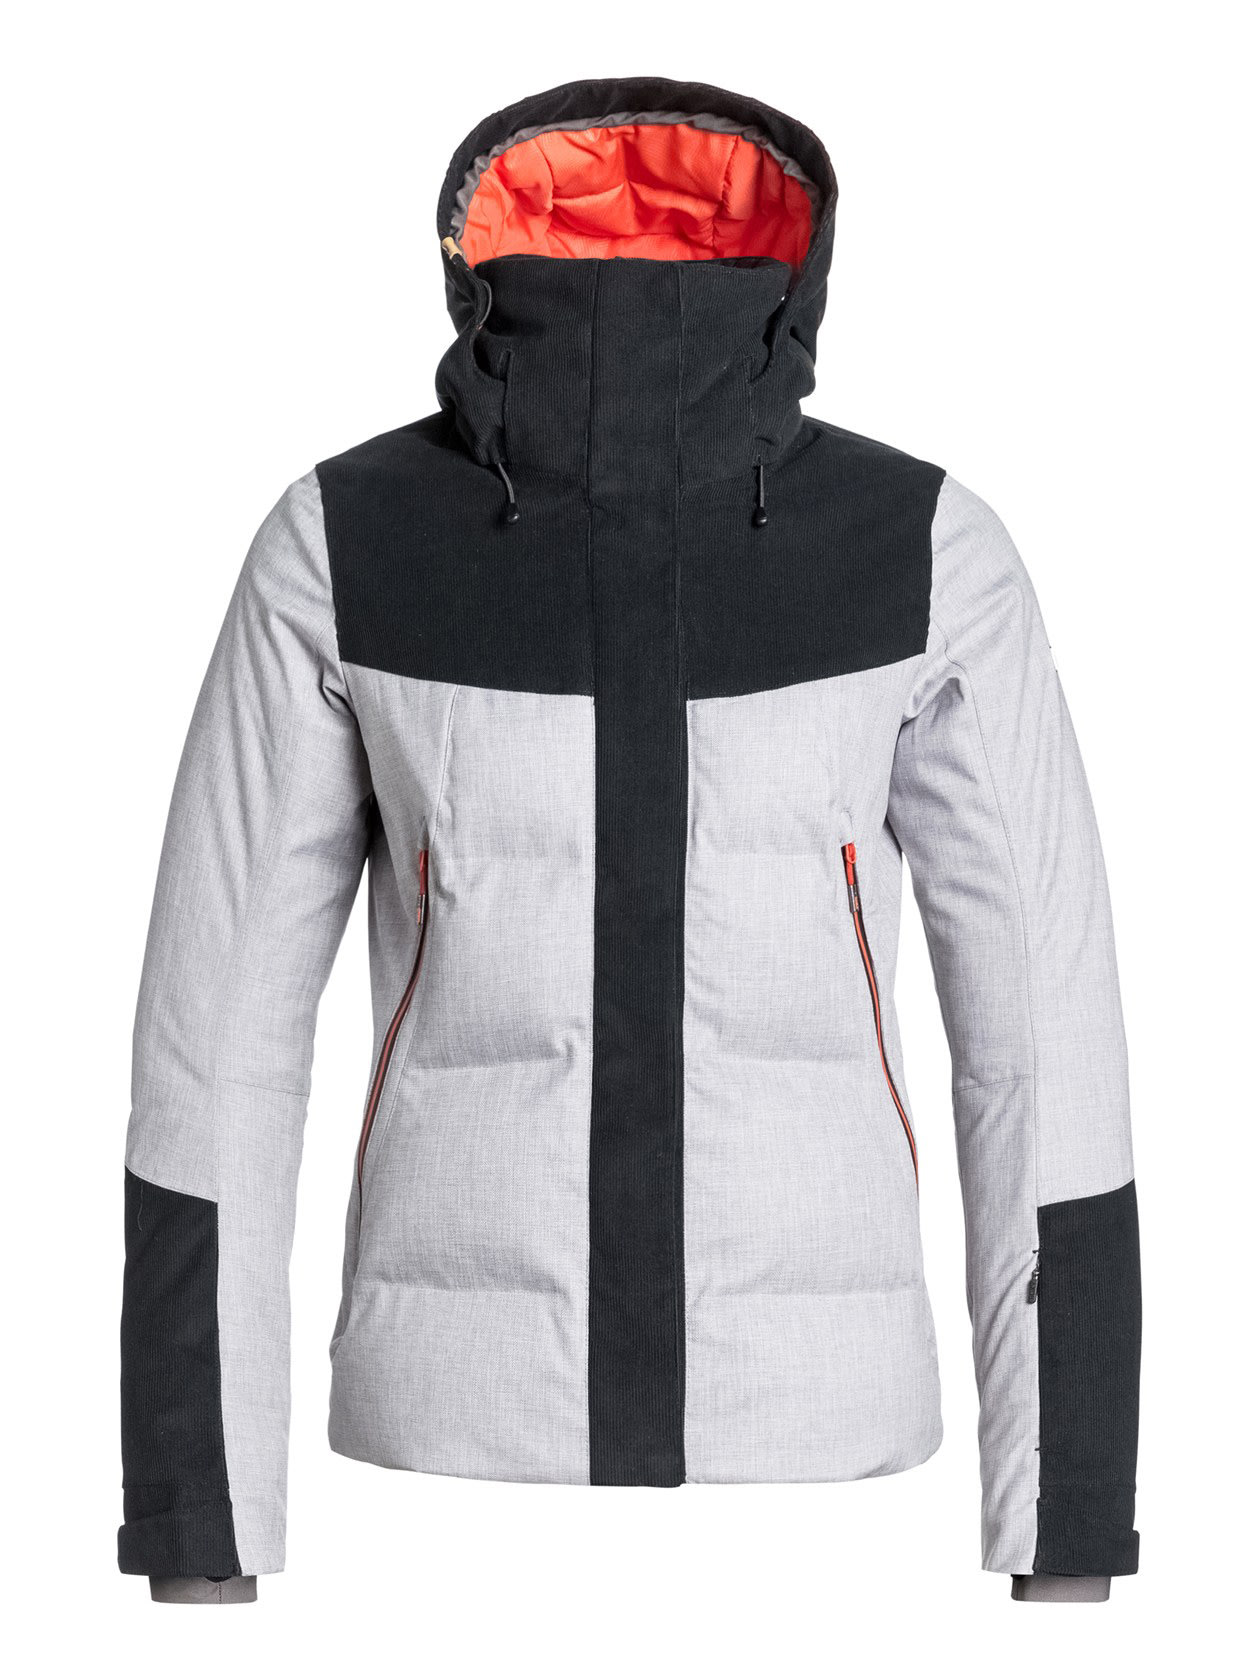 On Sale Roxy Flicker Snowboard Jacket Womens Up To 45 Off